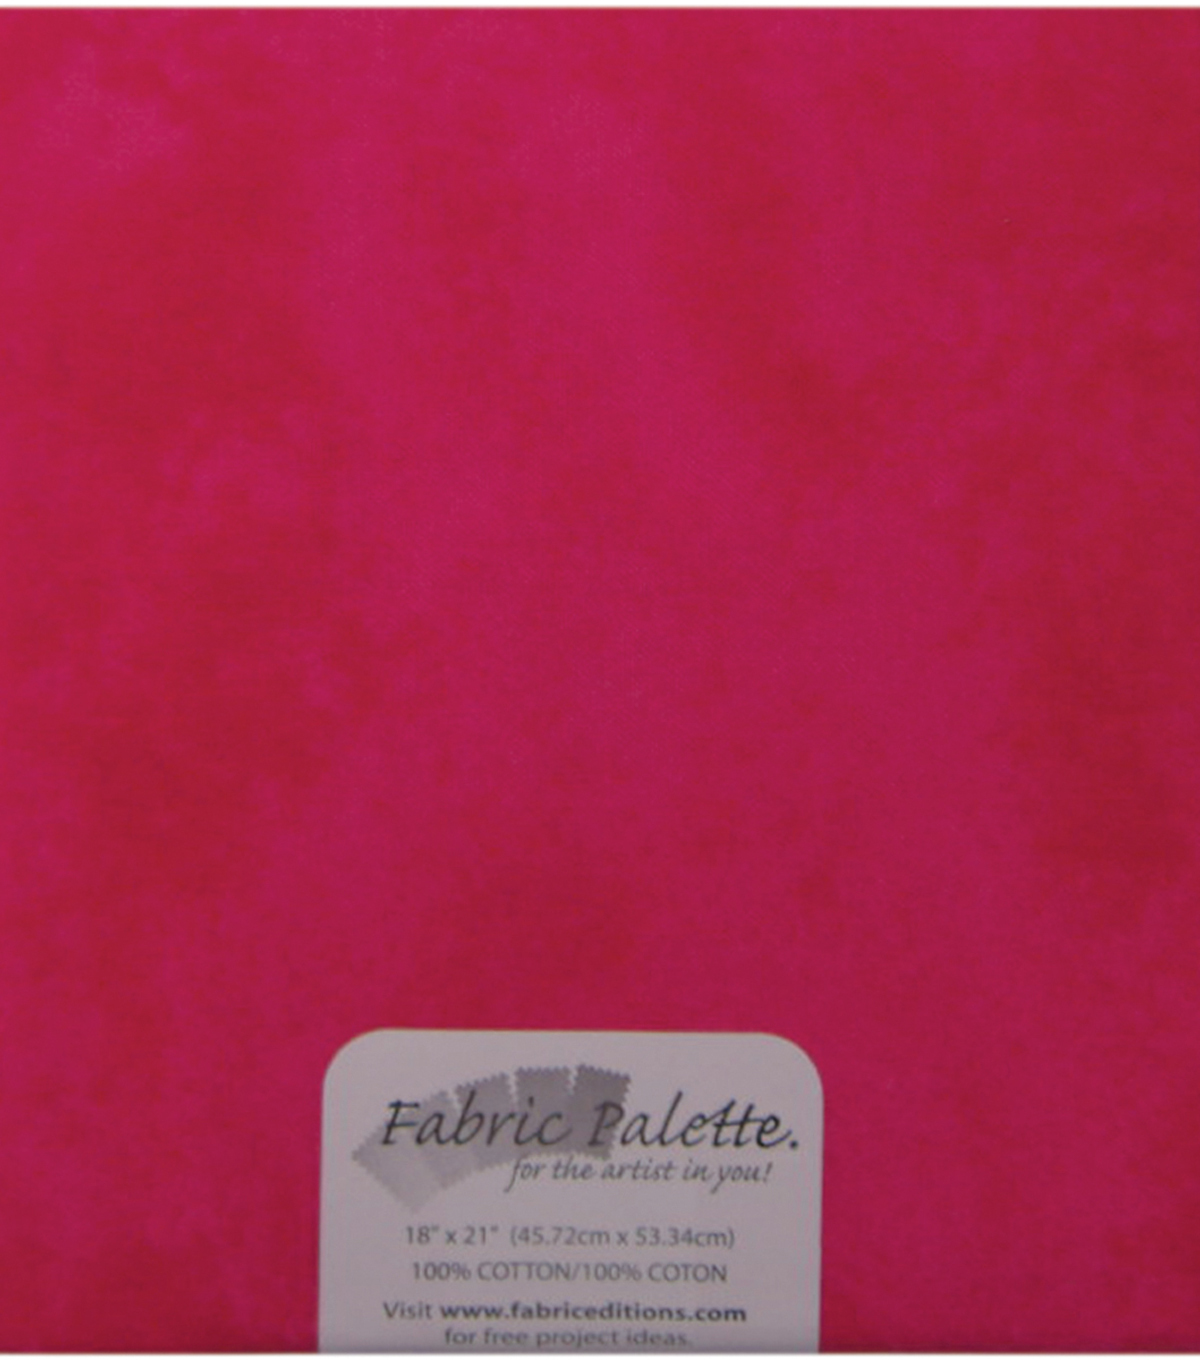 Fabric Palette 1/4yd Pre-cut Cotton Fabric-Dark Pink Texture